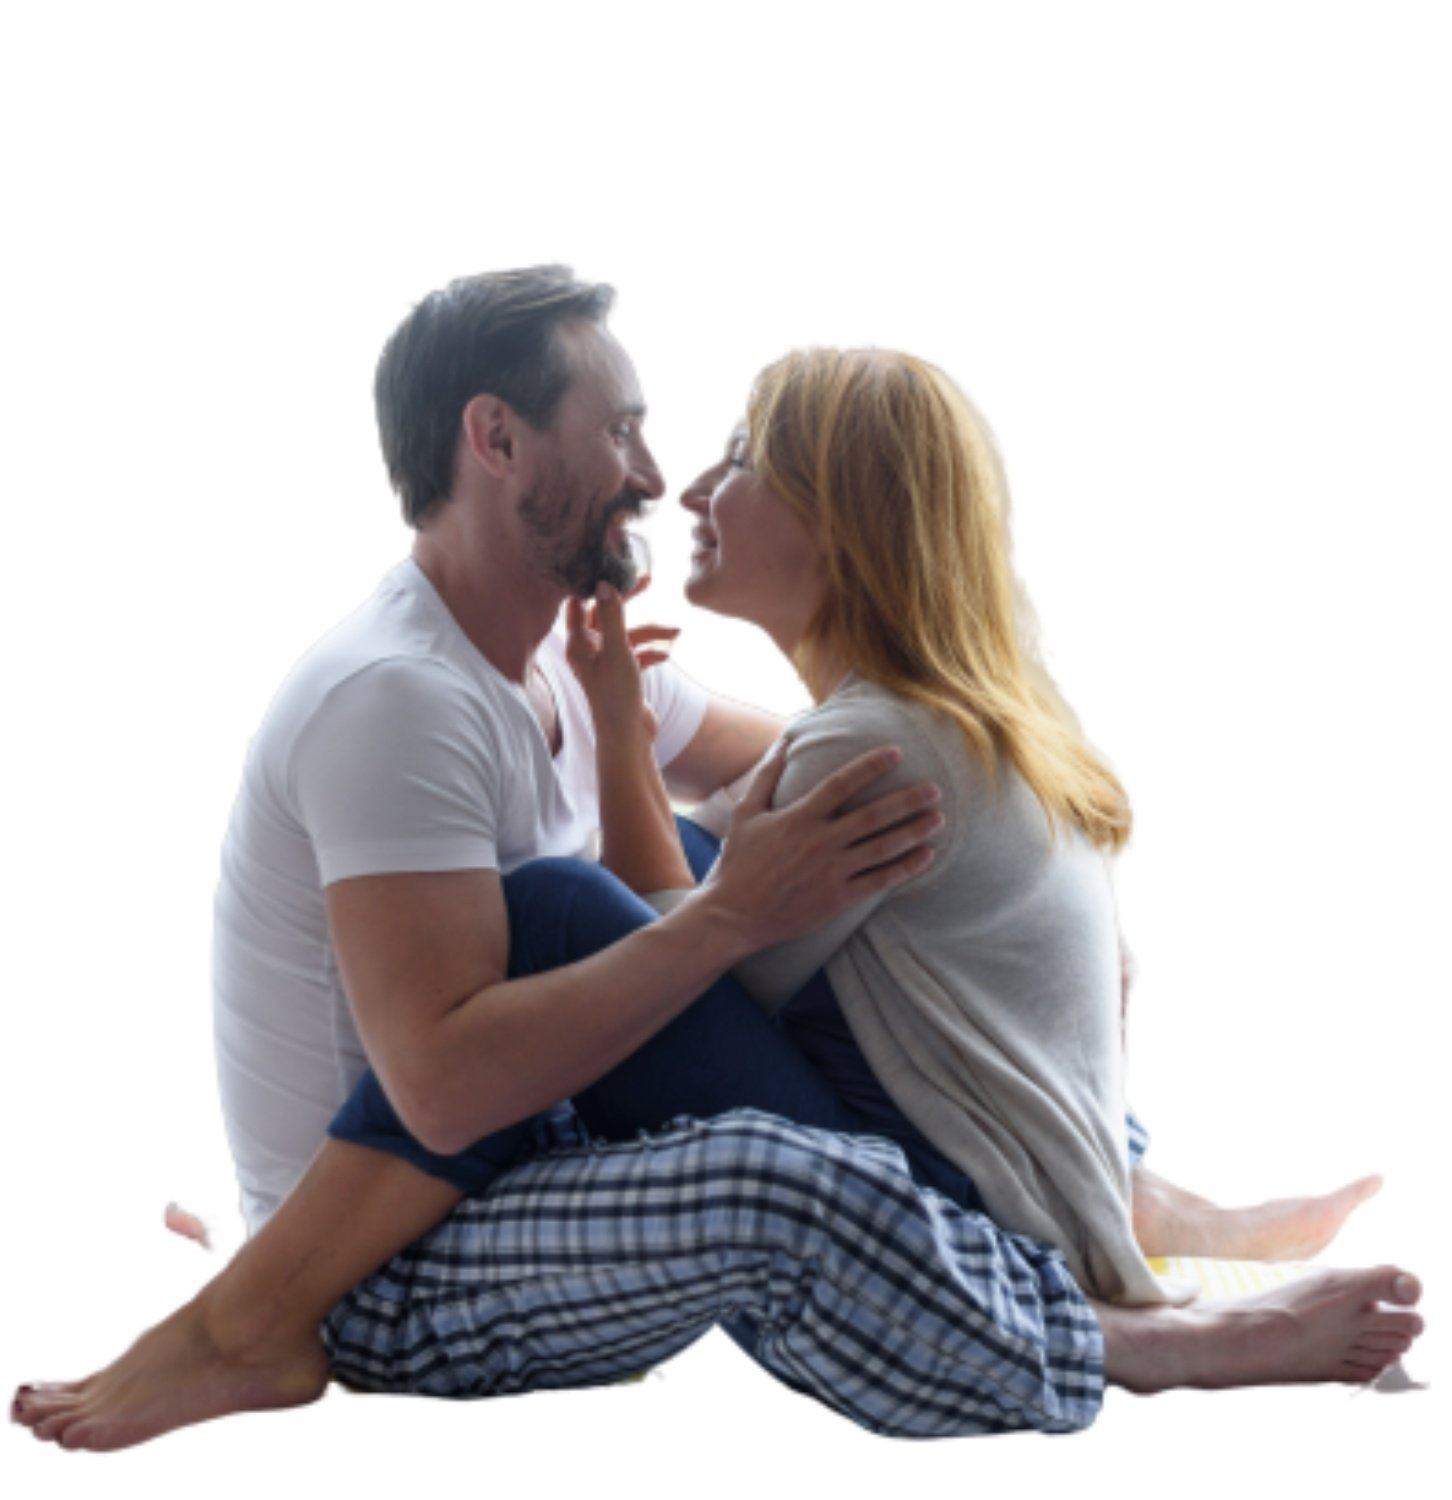 man and woman looking for closeness